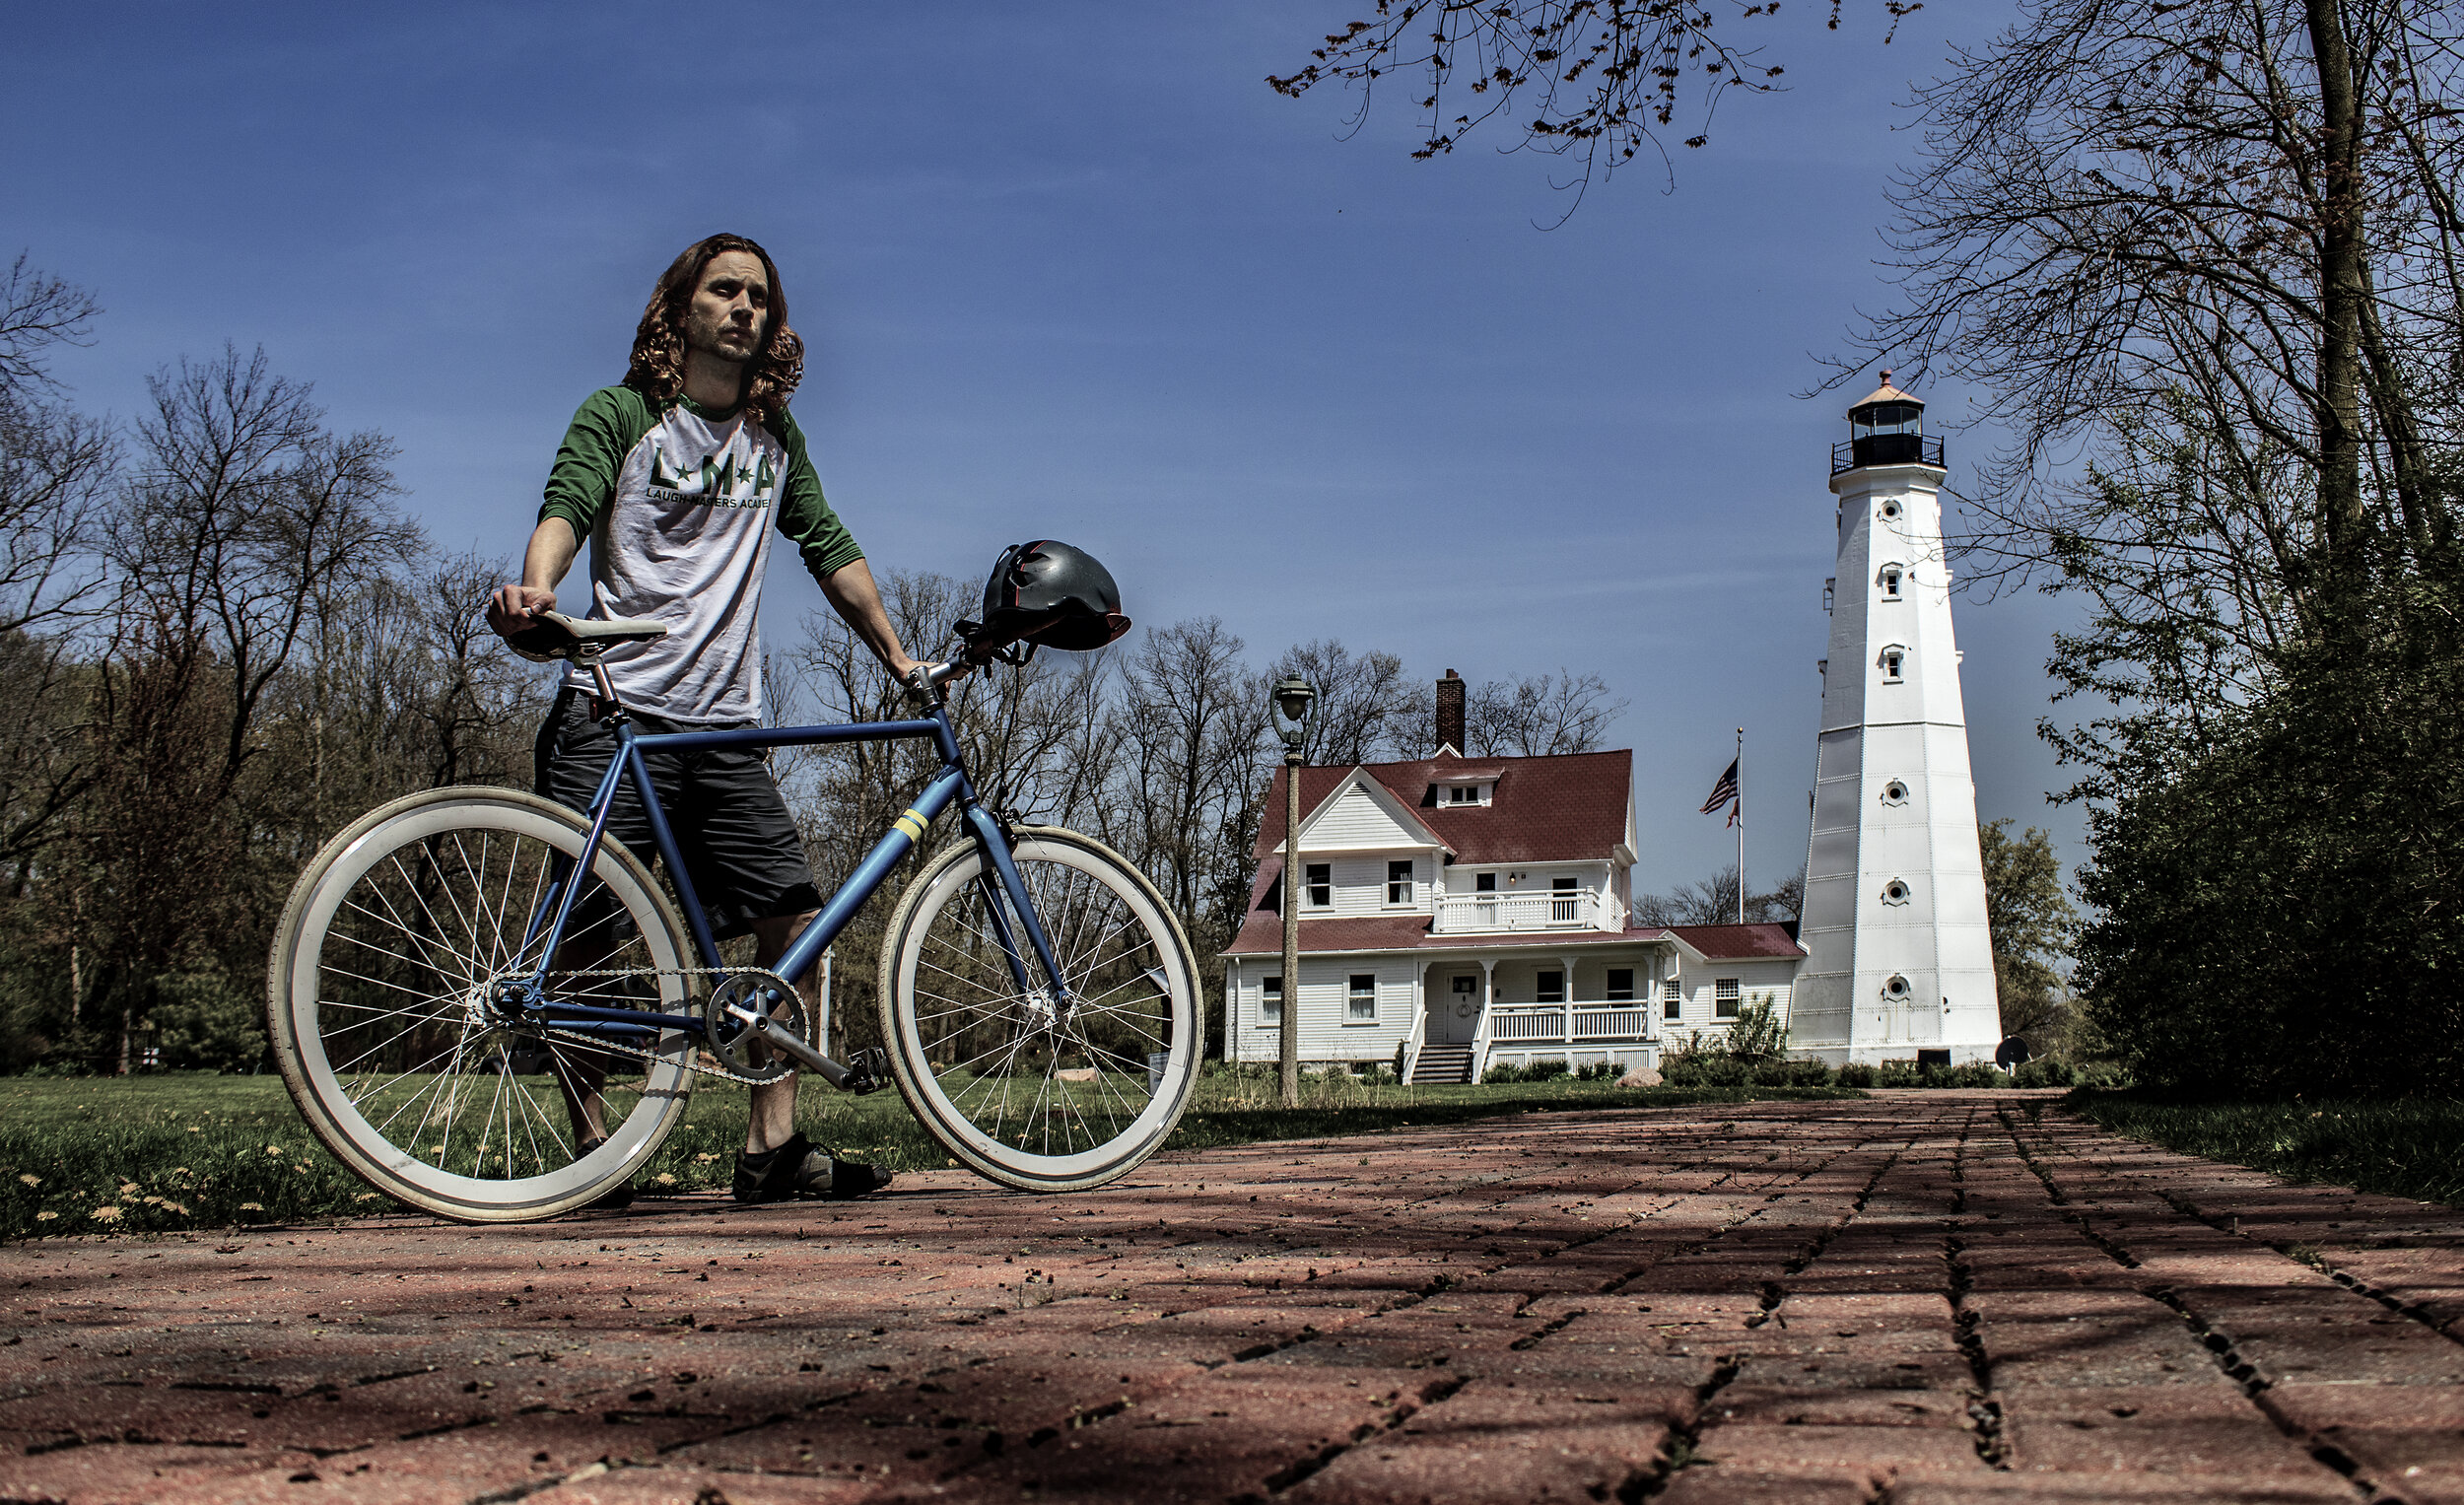 Milwaukee_Lake Park_North Point Light Tower_Wandering Badger_Sole Bike_011_20190522_IMG_6019.jpg